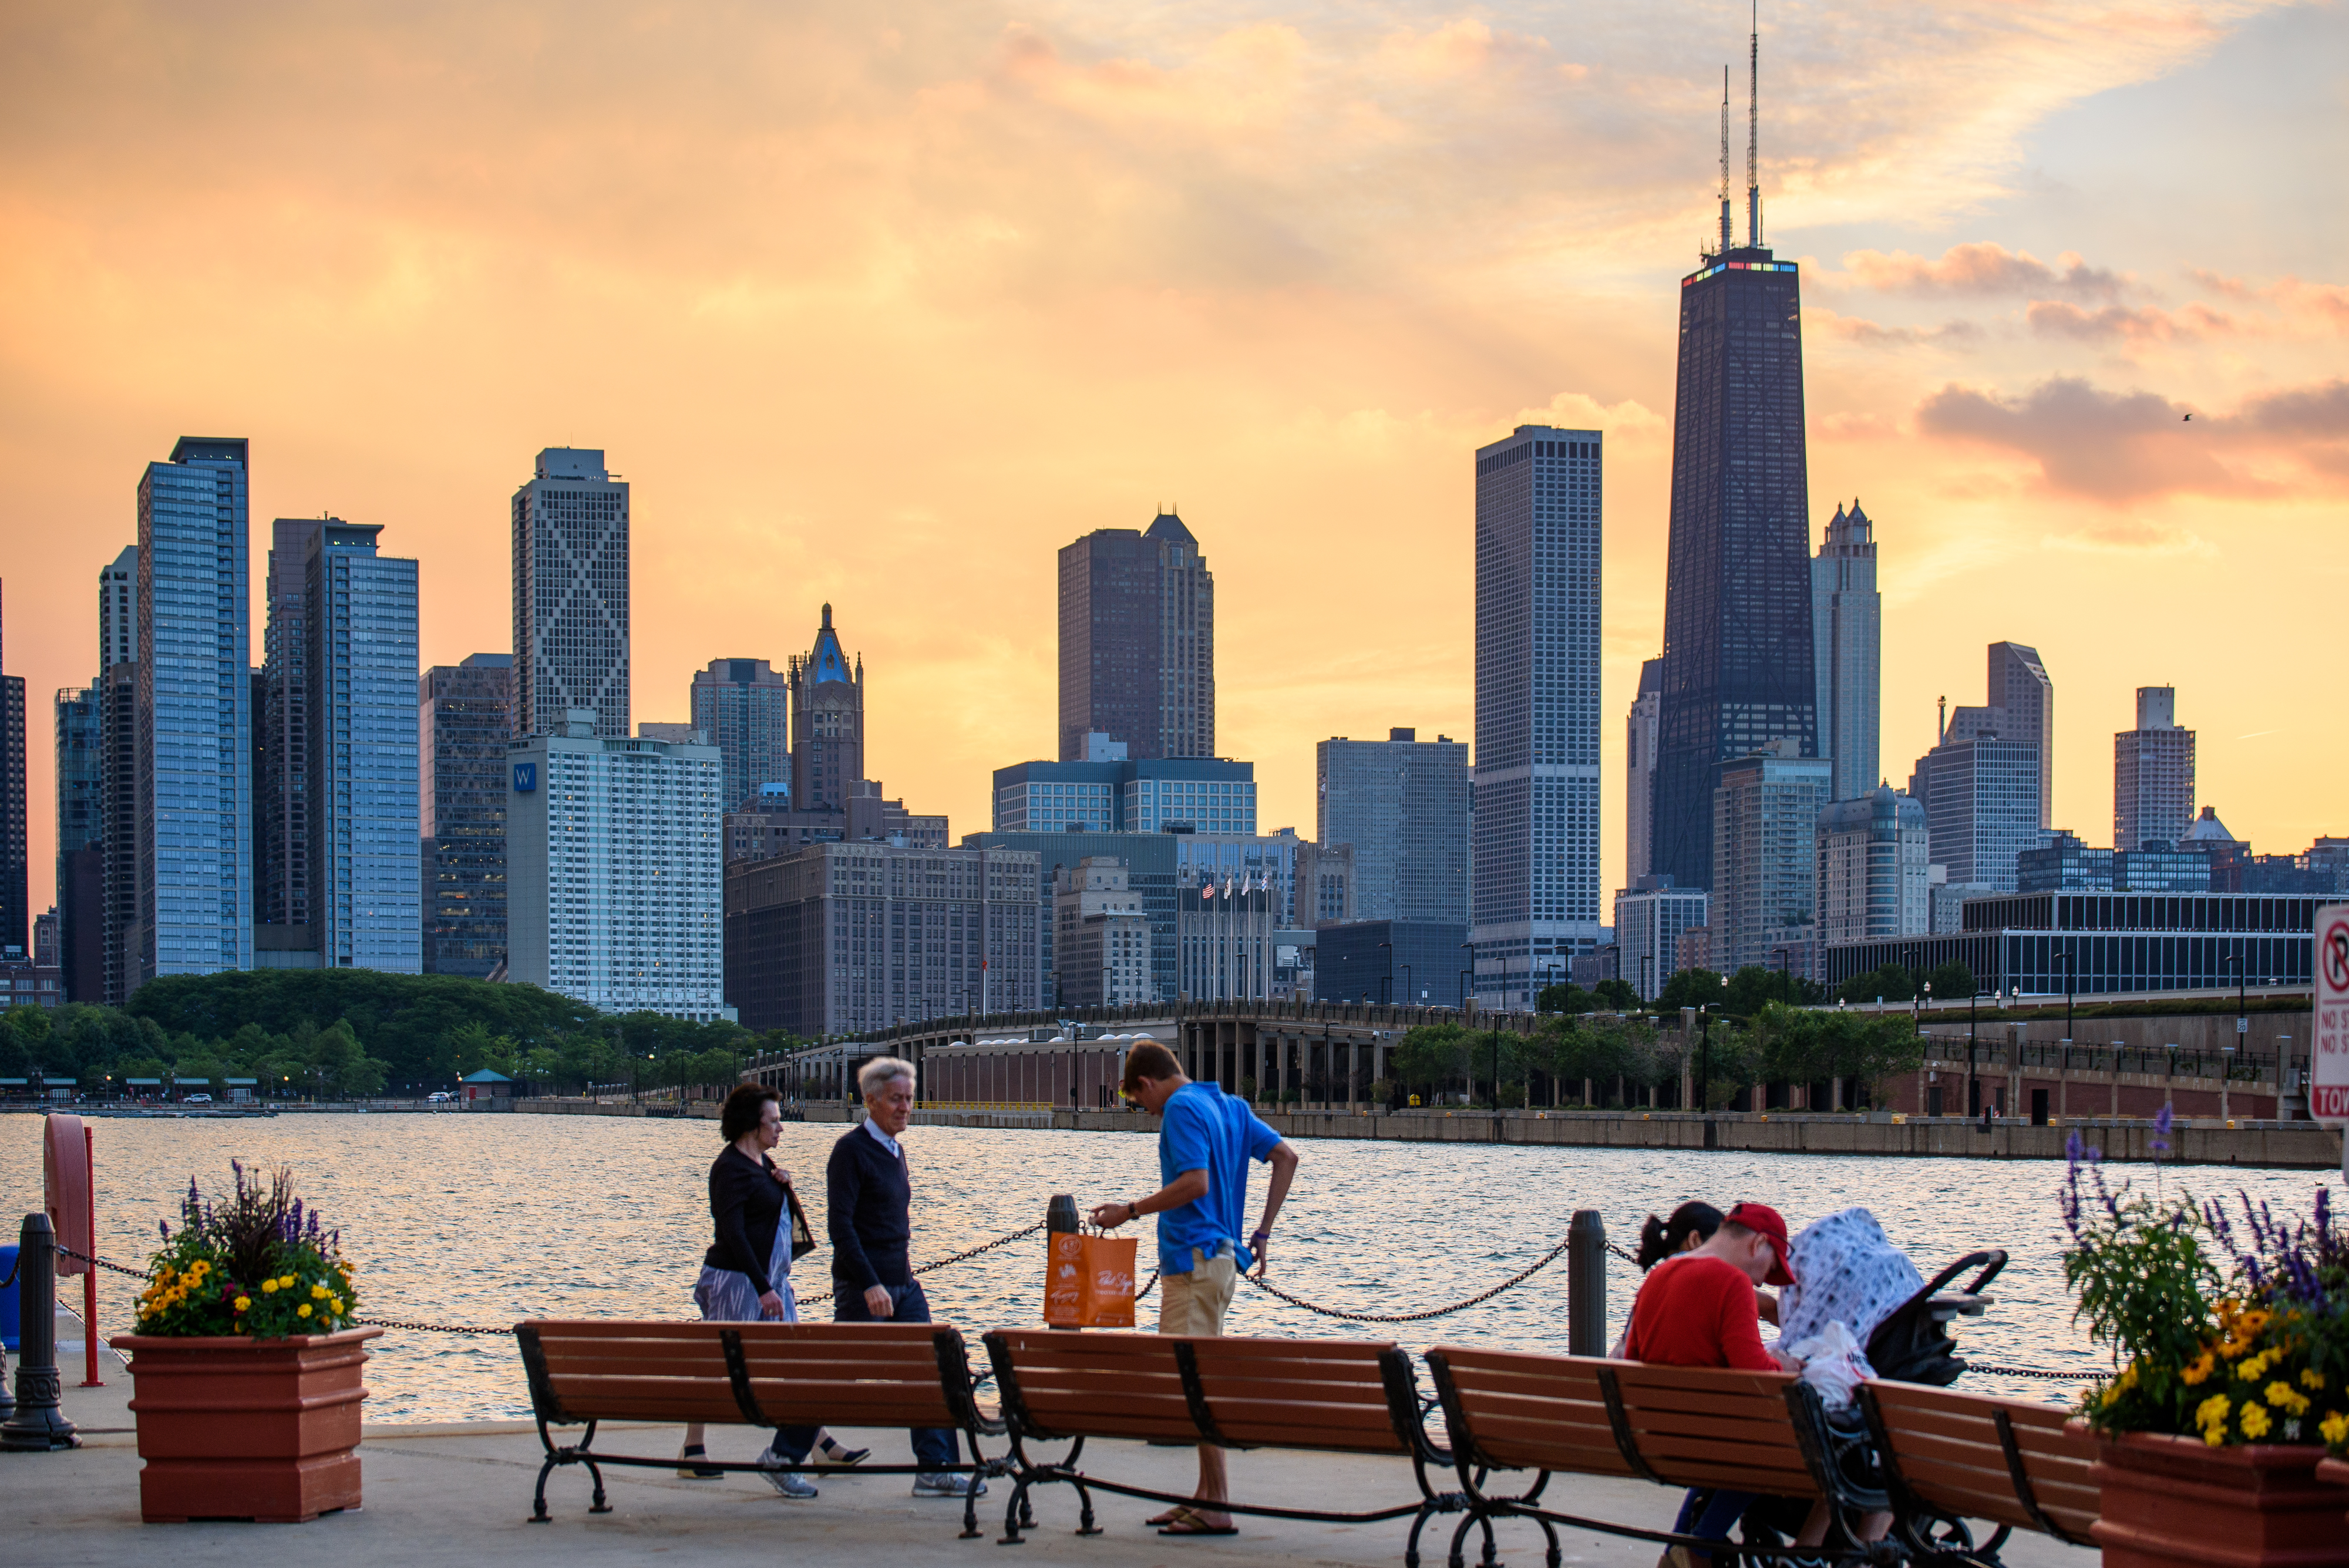 navy pier events attractions find cruises shows dining